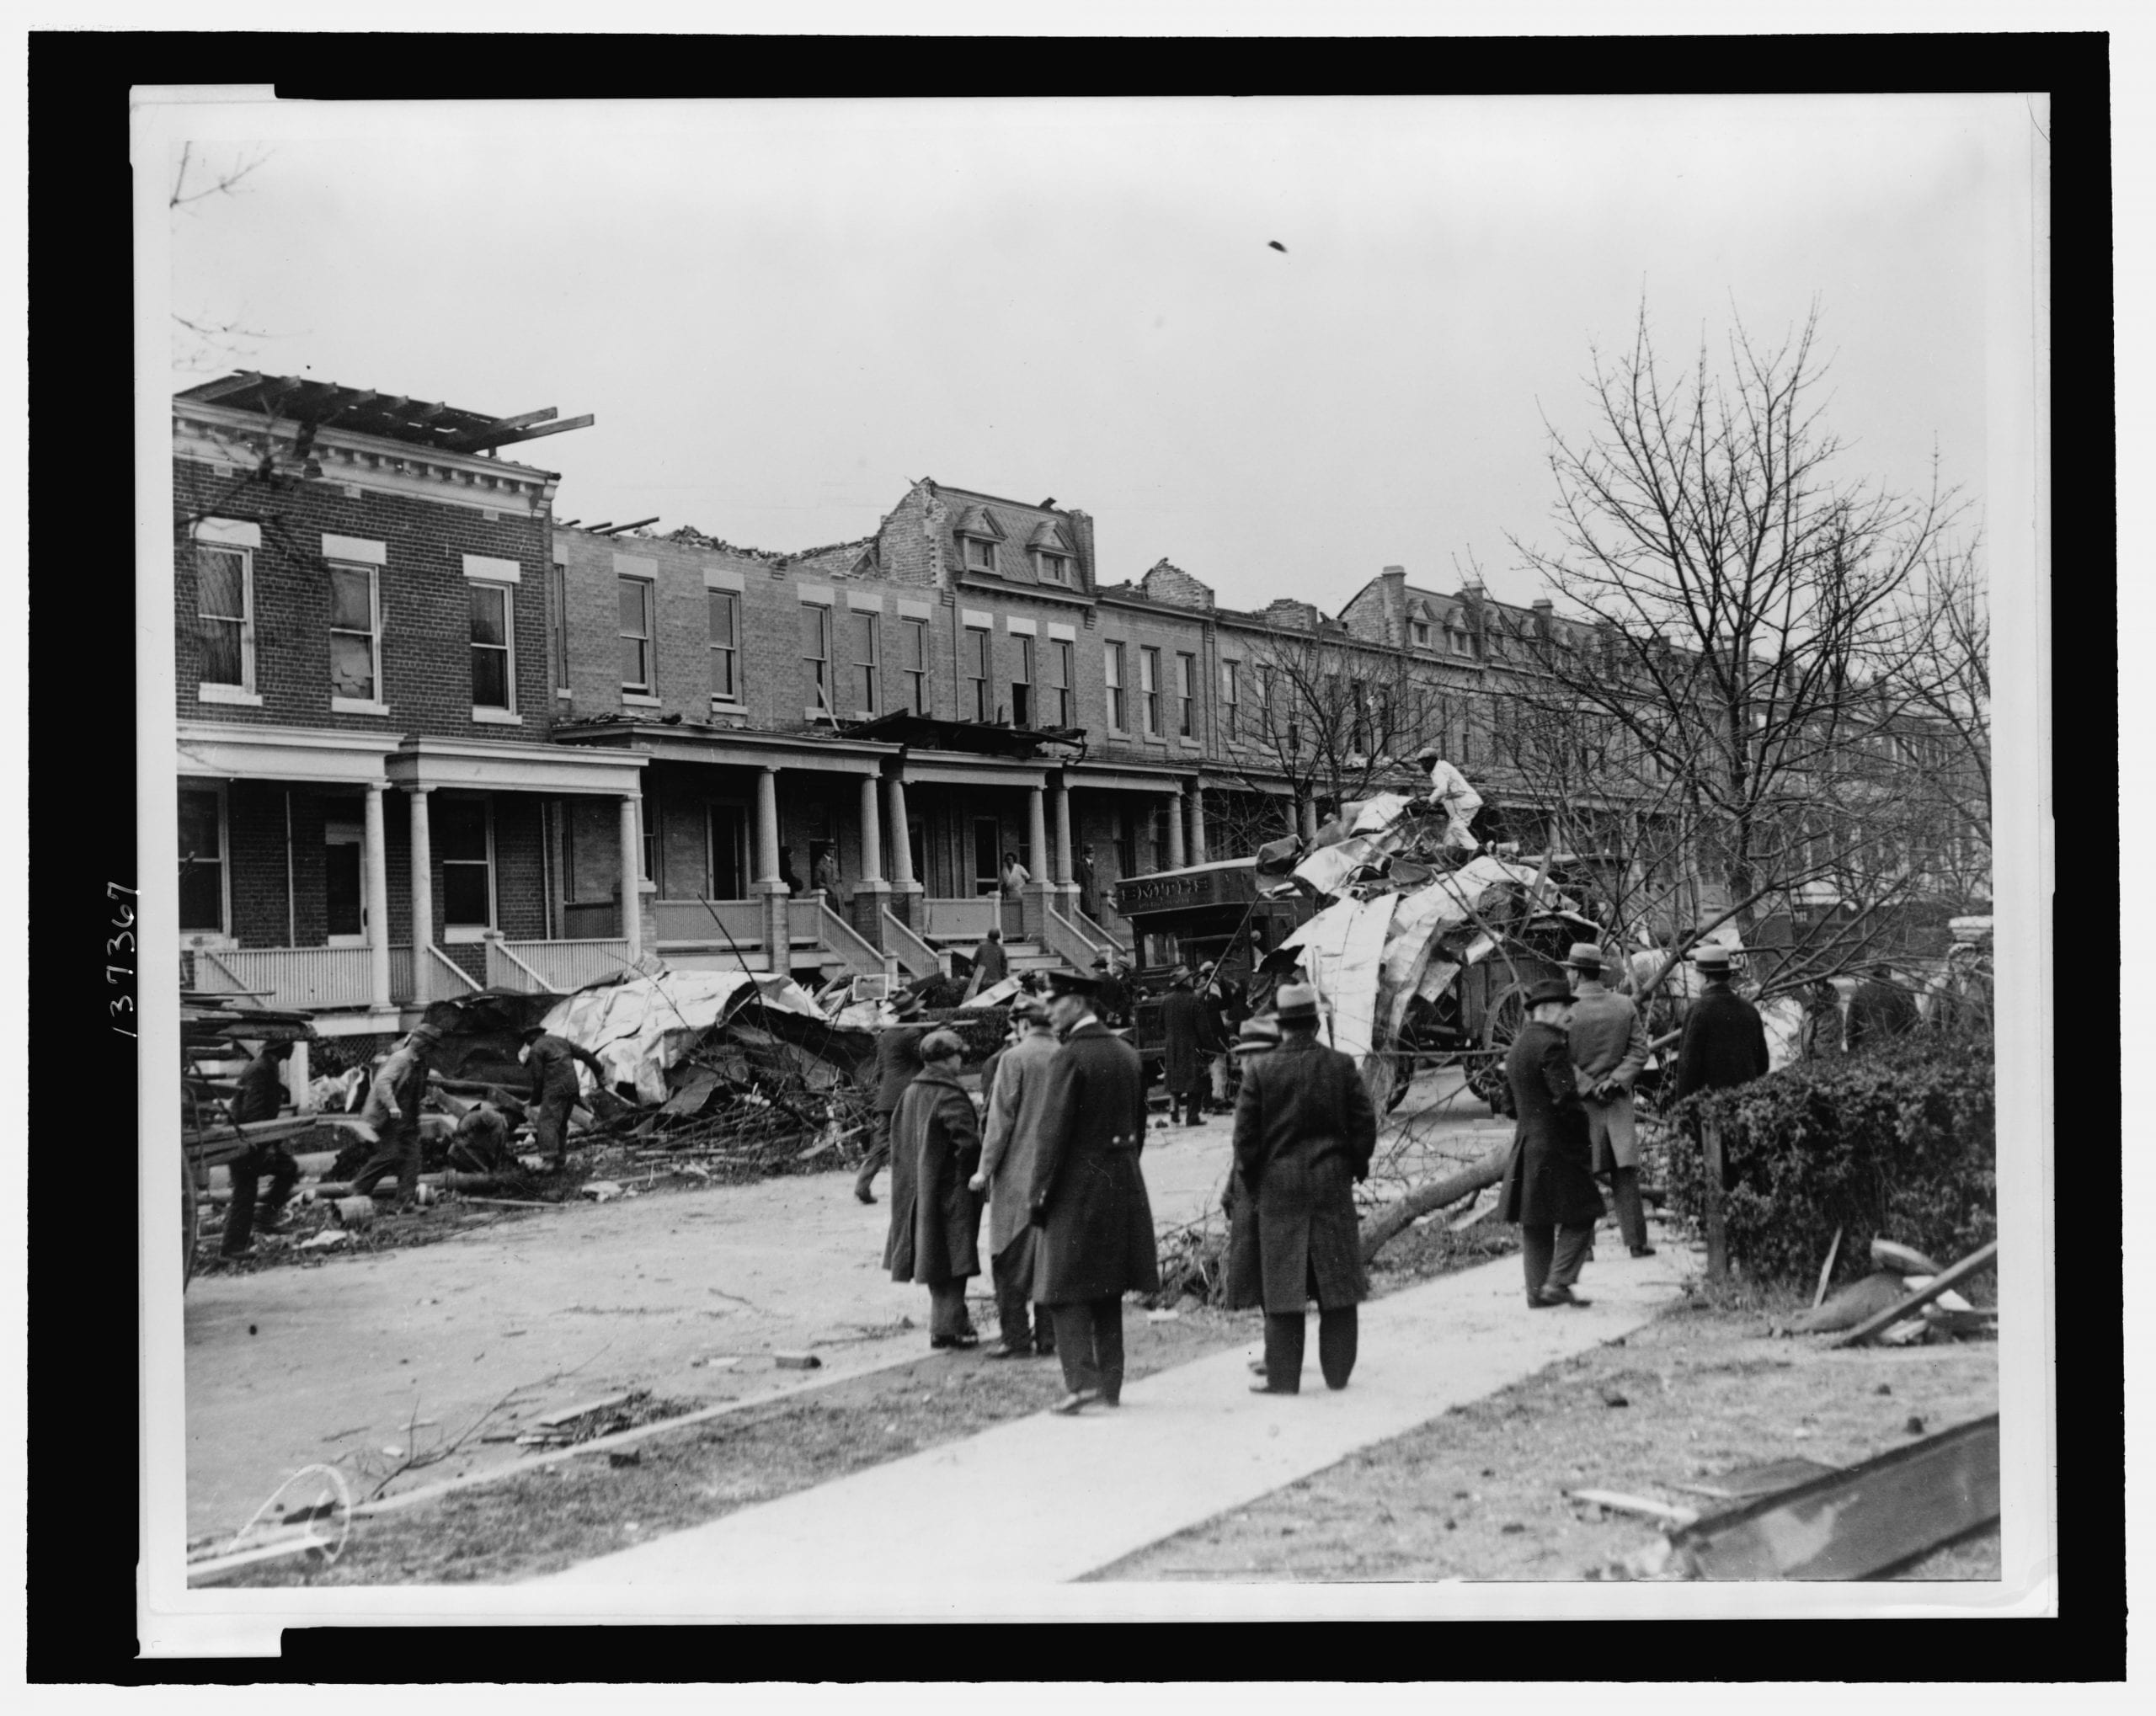 Men watching debris being cleaned up at row houses on A St., NE, near 14th St., severely damaged by a tornado on Nov. 17, 1927